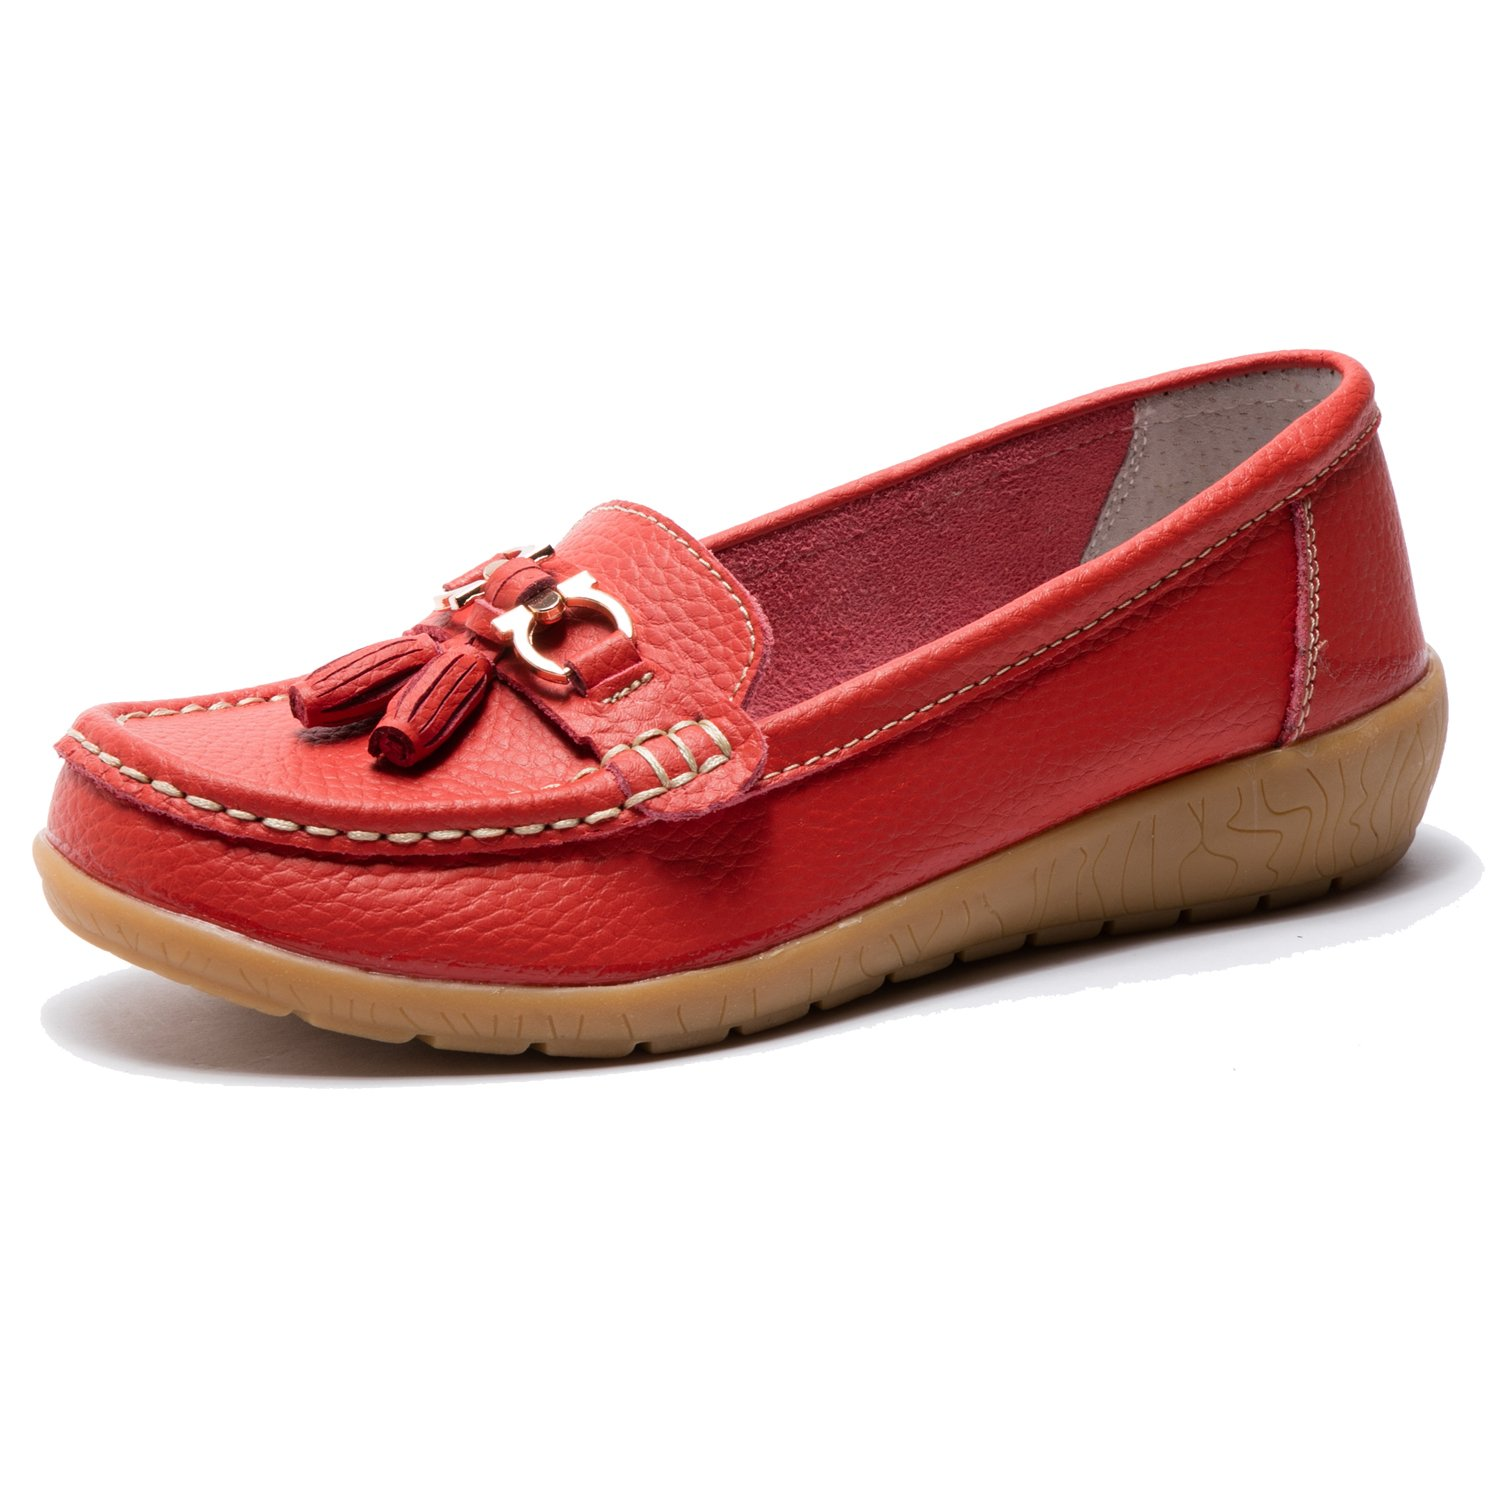 Moonwalker Women's Leather Slip-on Comfort Tassel Loafers Moccasins